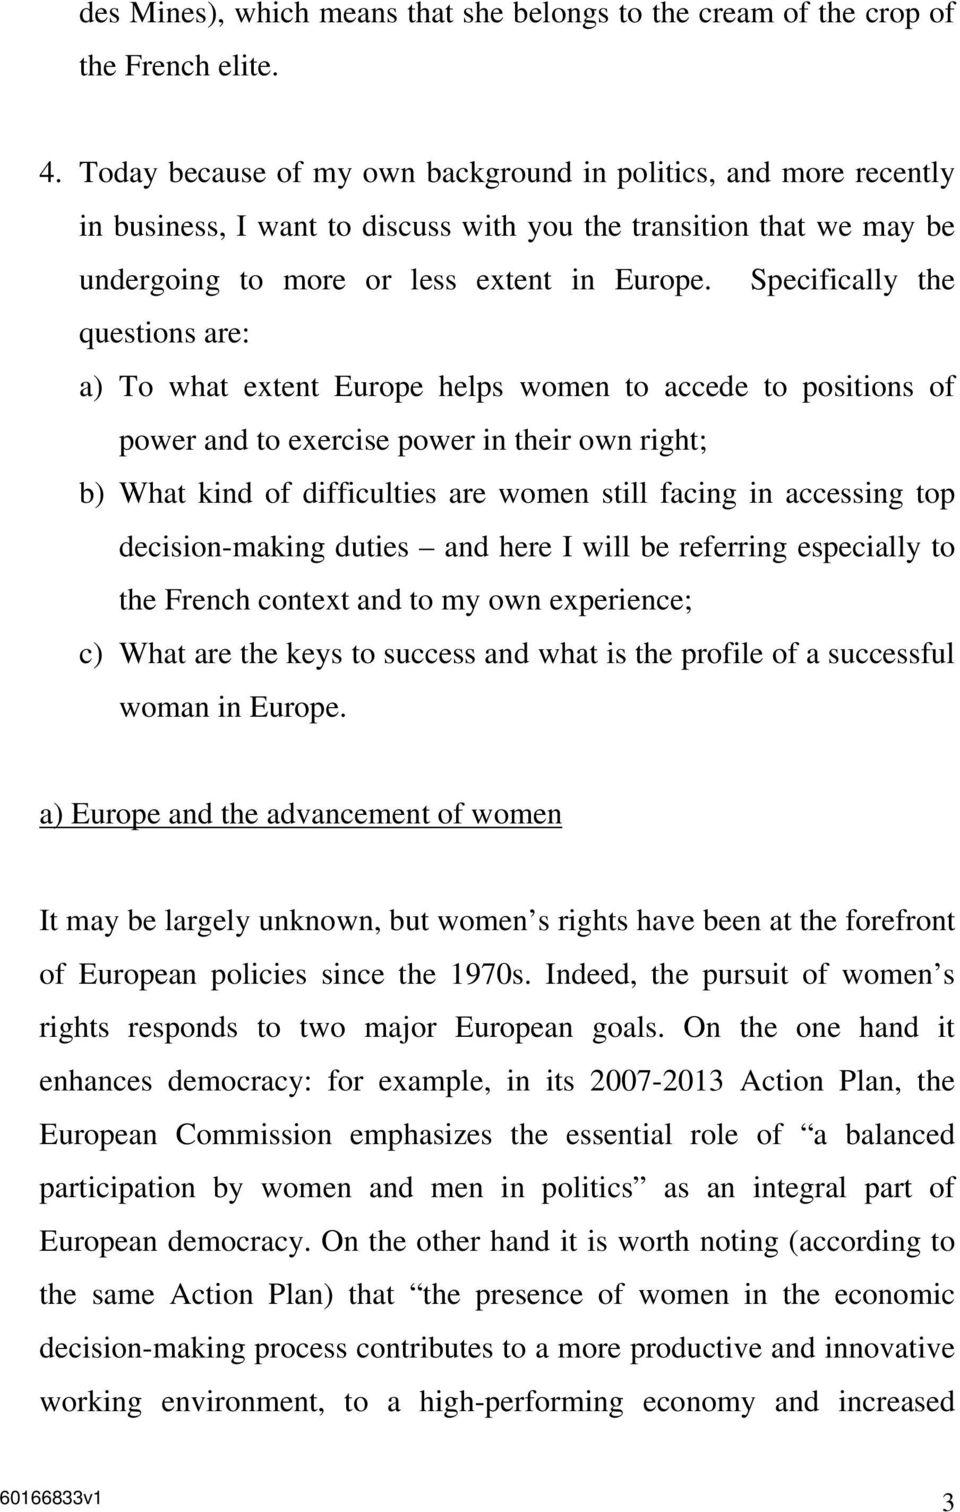 Specifically the questions are: a) To what extent Europe helps women to accede to positions of power and to exercise power in their own right; b) What kind of difficulties are women still facing in